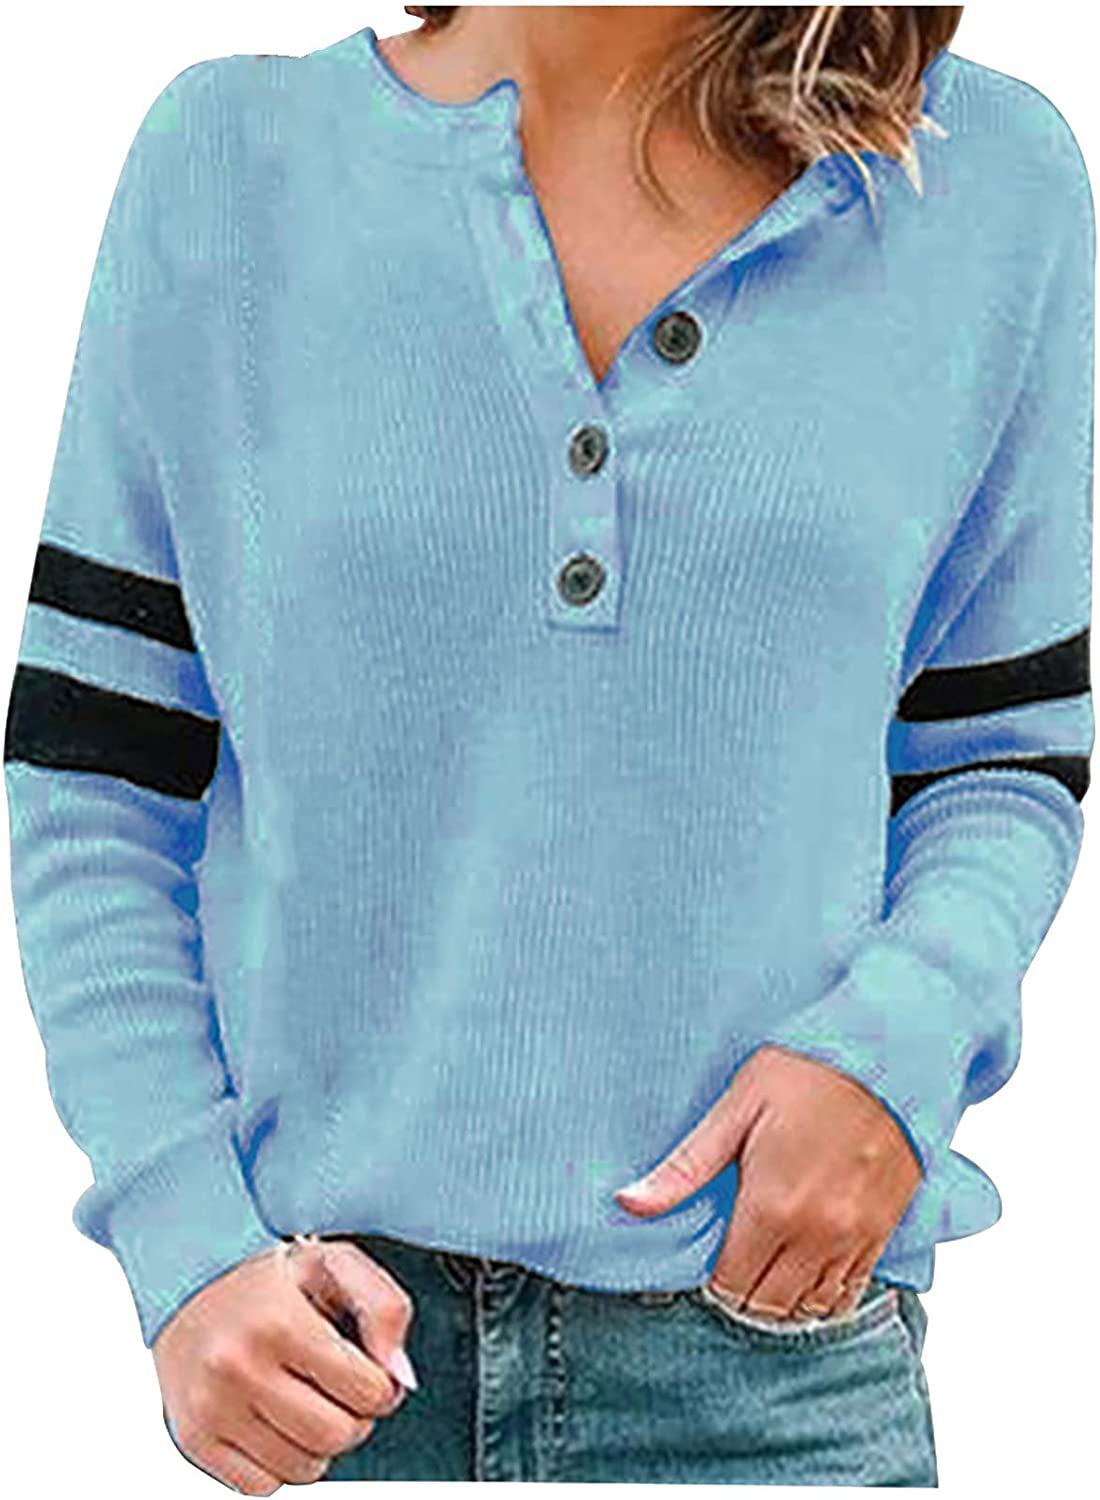 Women's Sweatshirts Pullover Knitted Ribbed Tops V Neck Long Sleeve Blouse Solid Button up Shirts